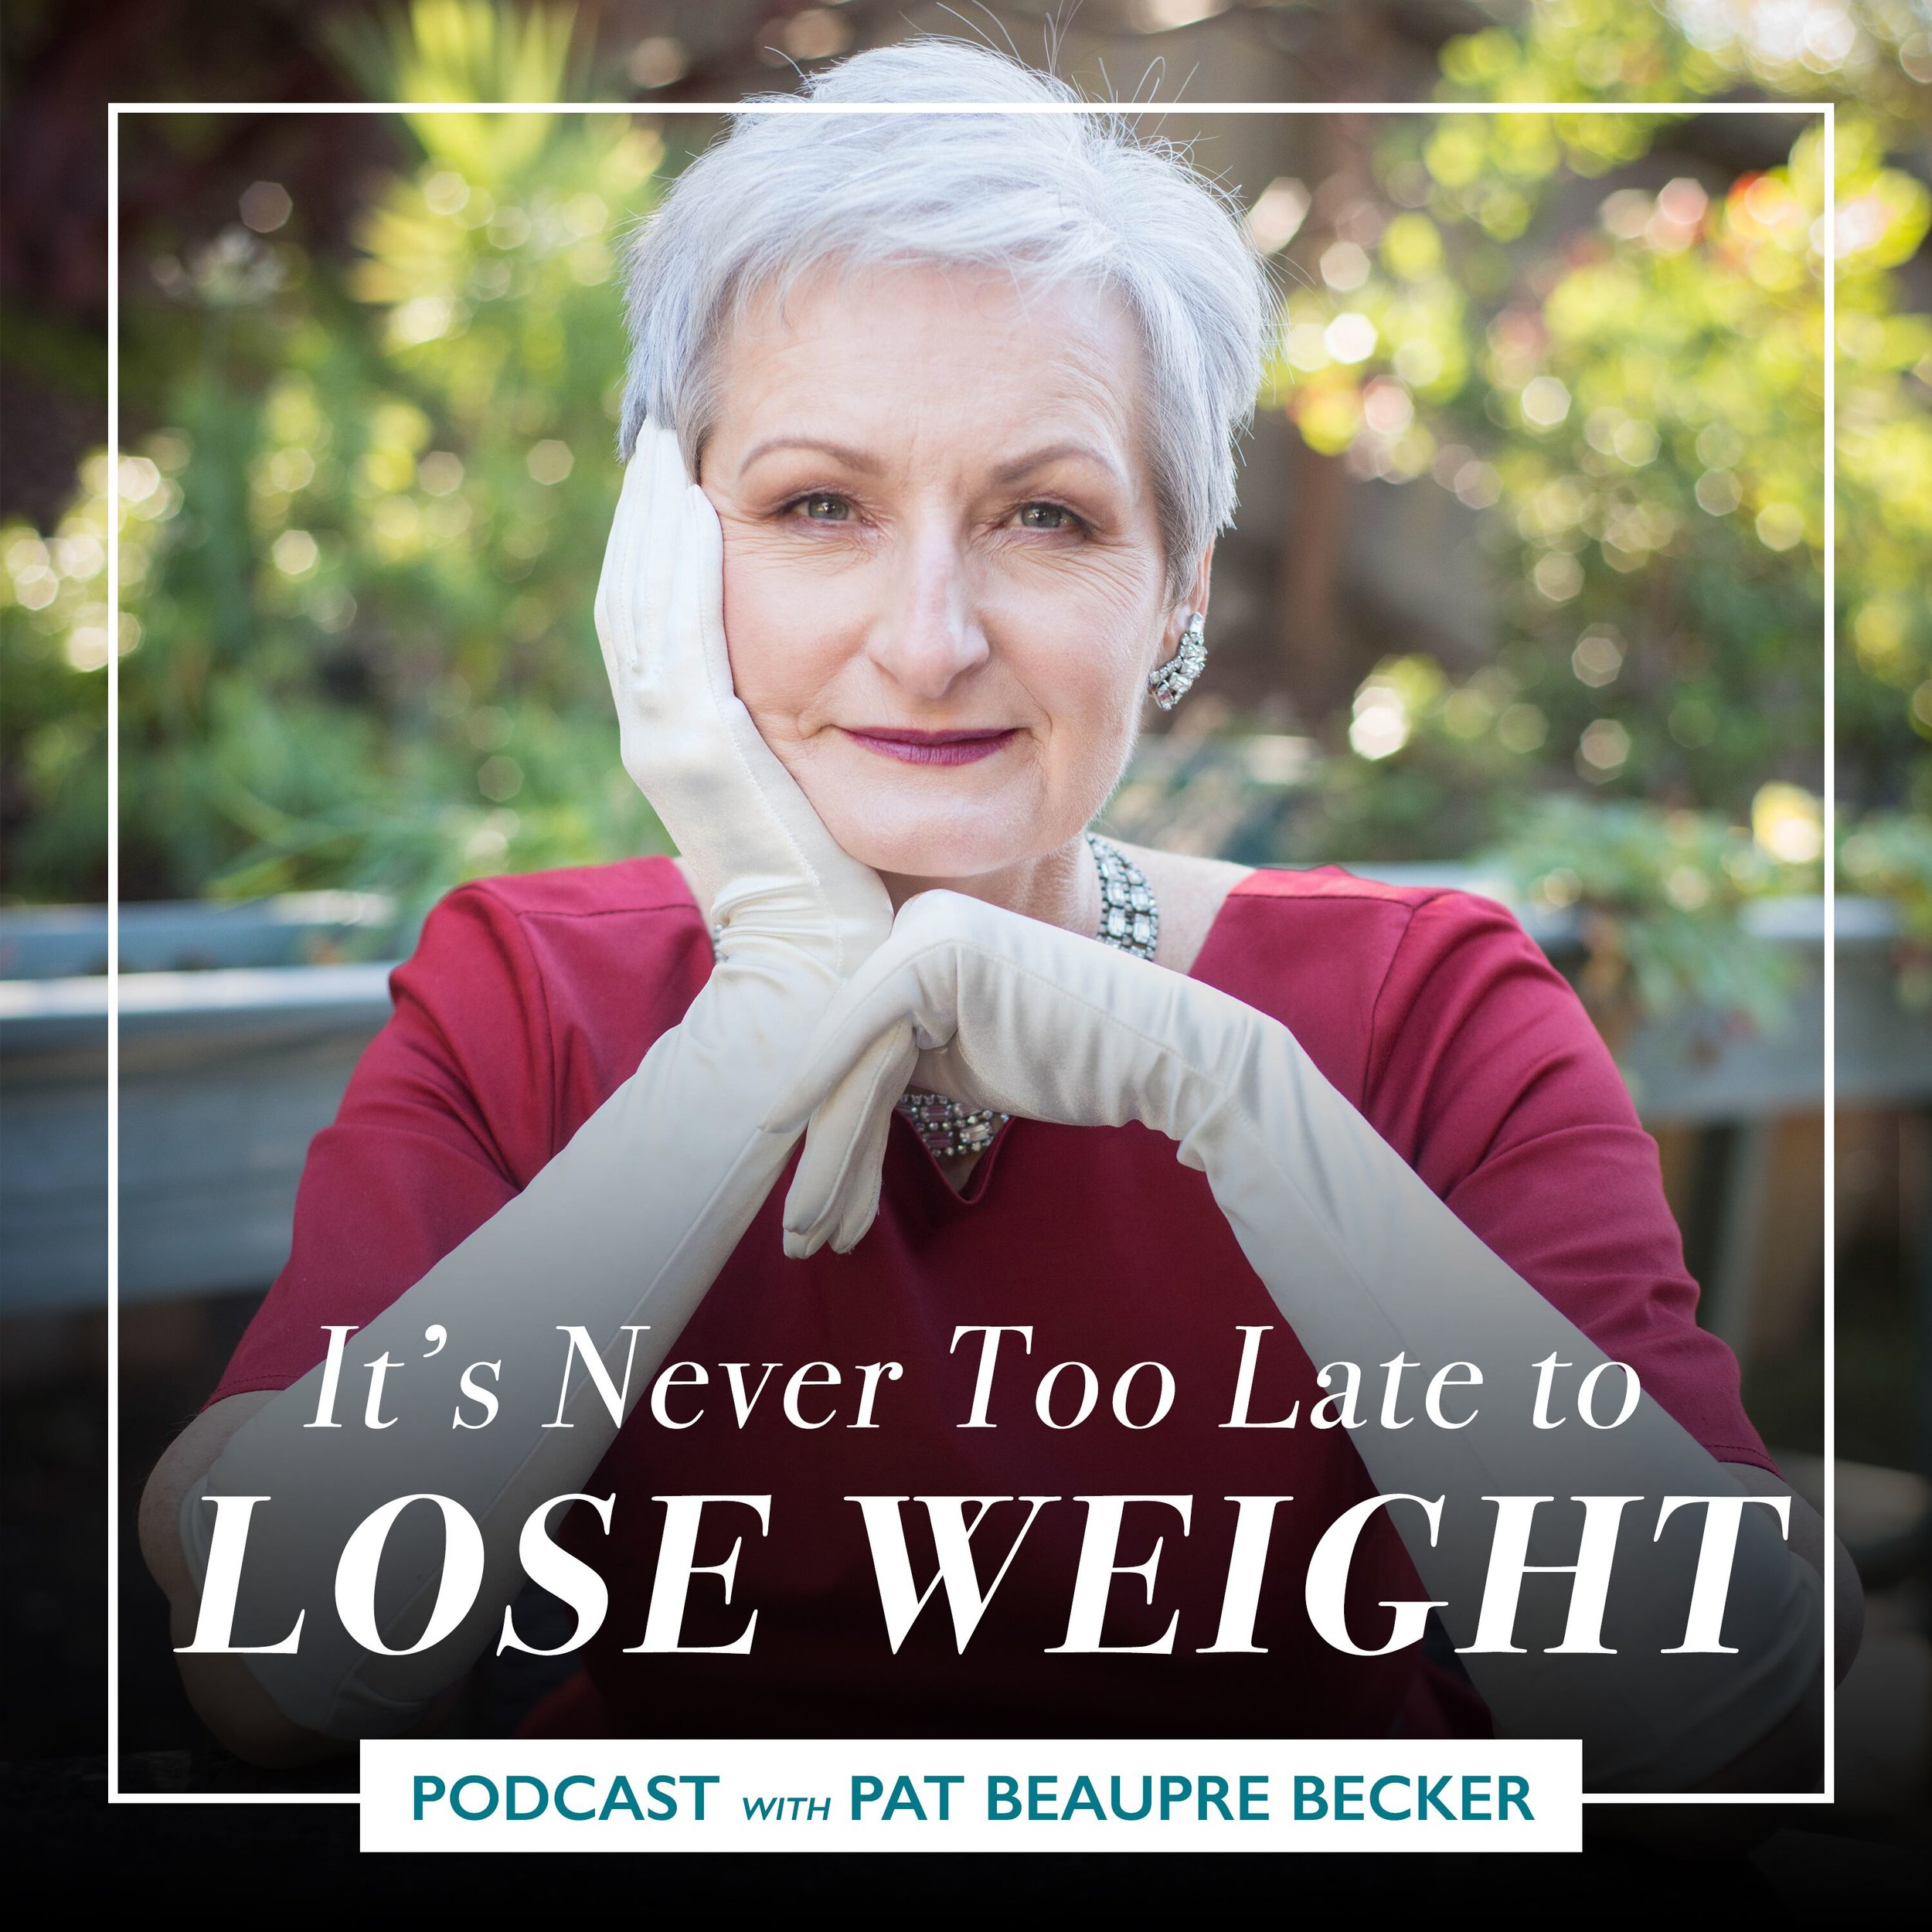 Listen to Pat teach you how to lose weight today.